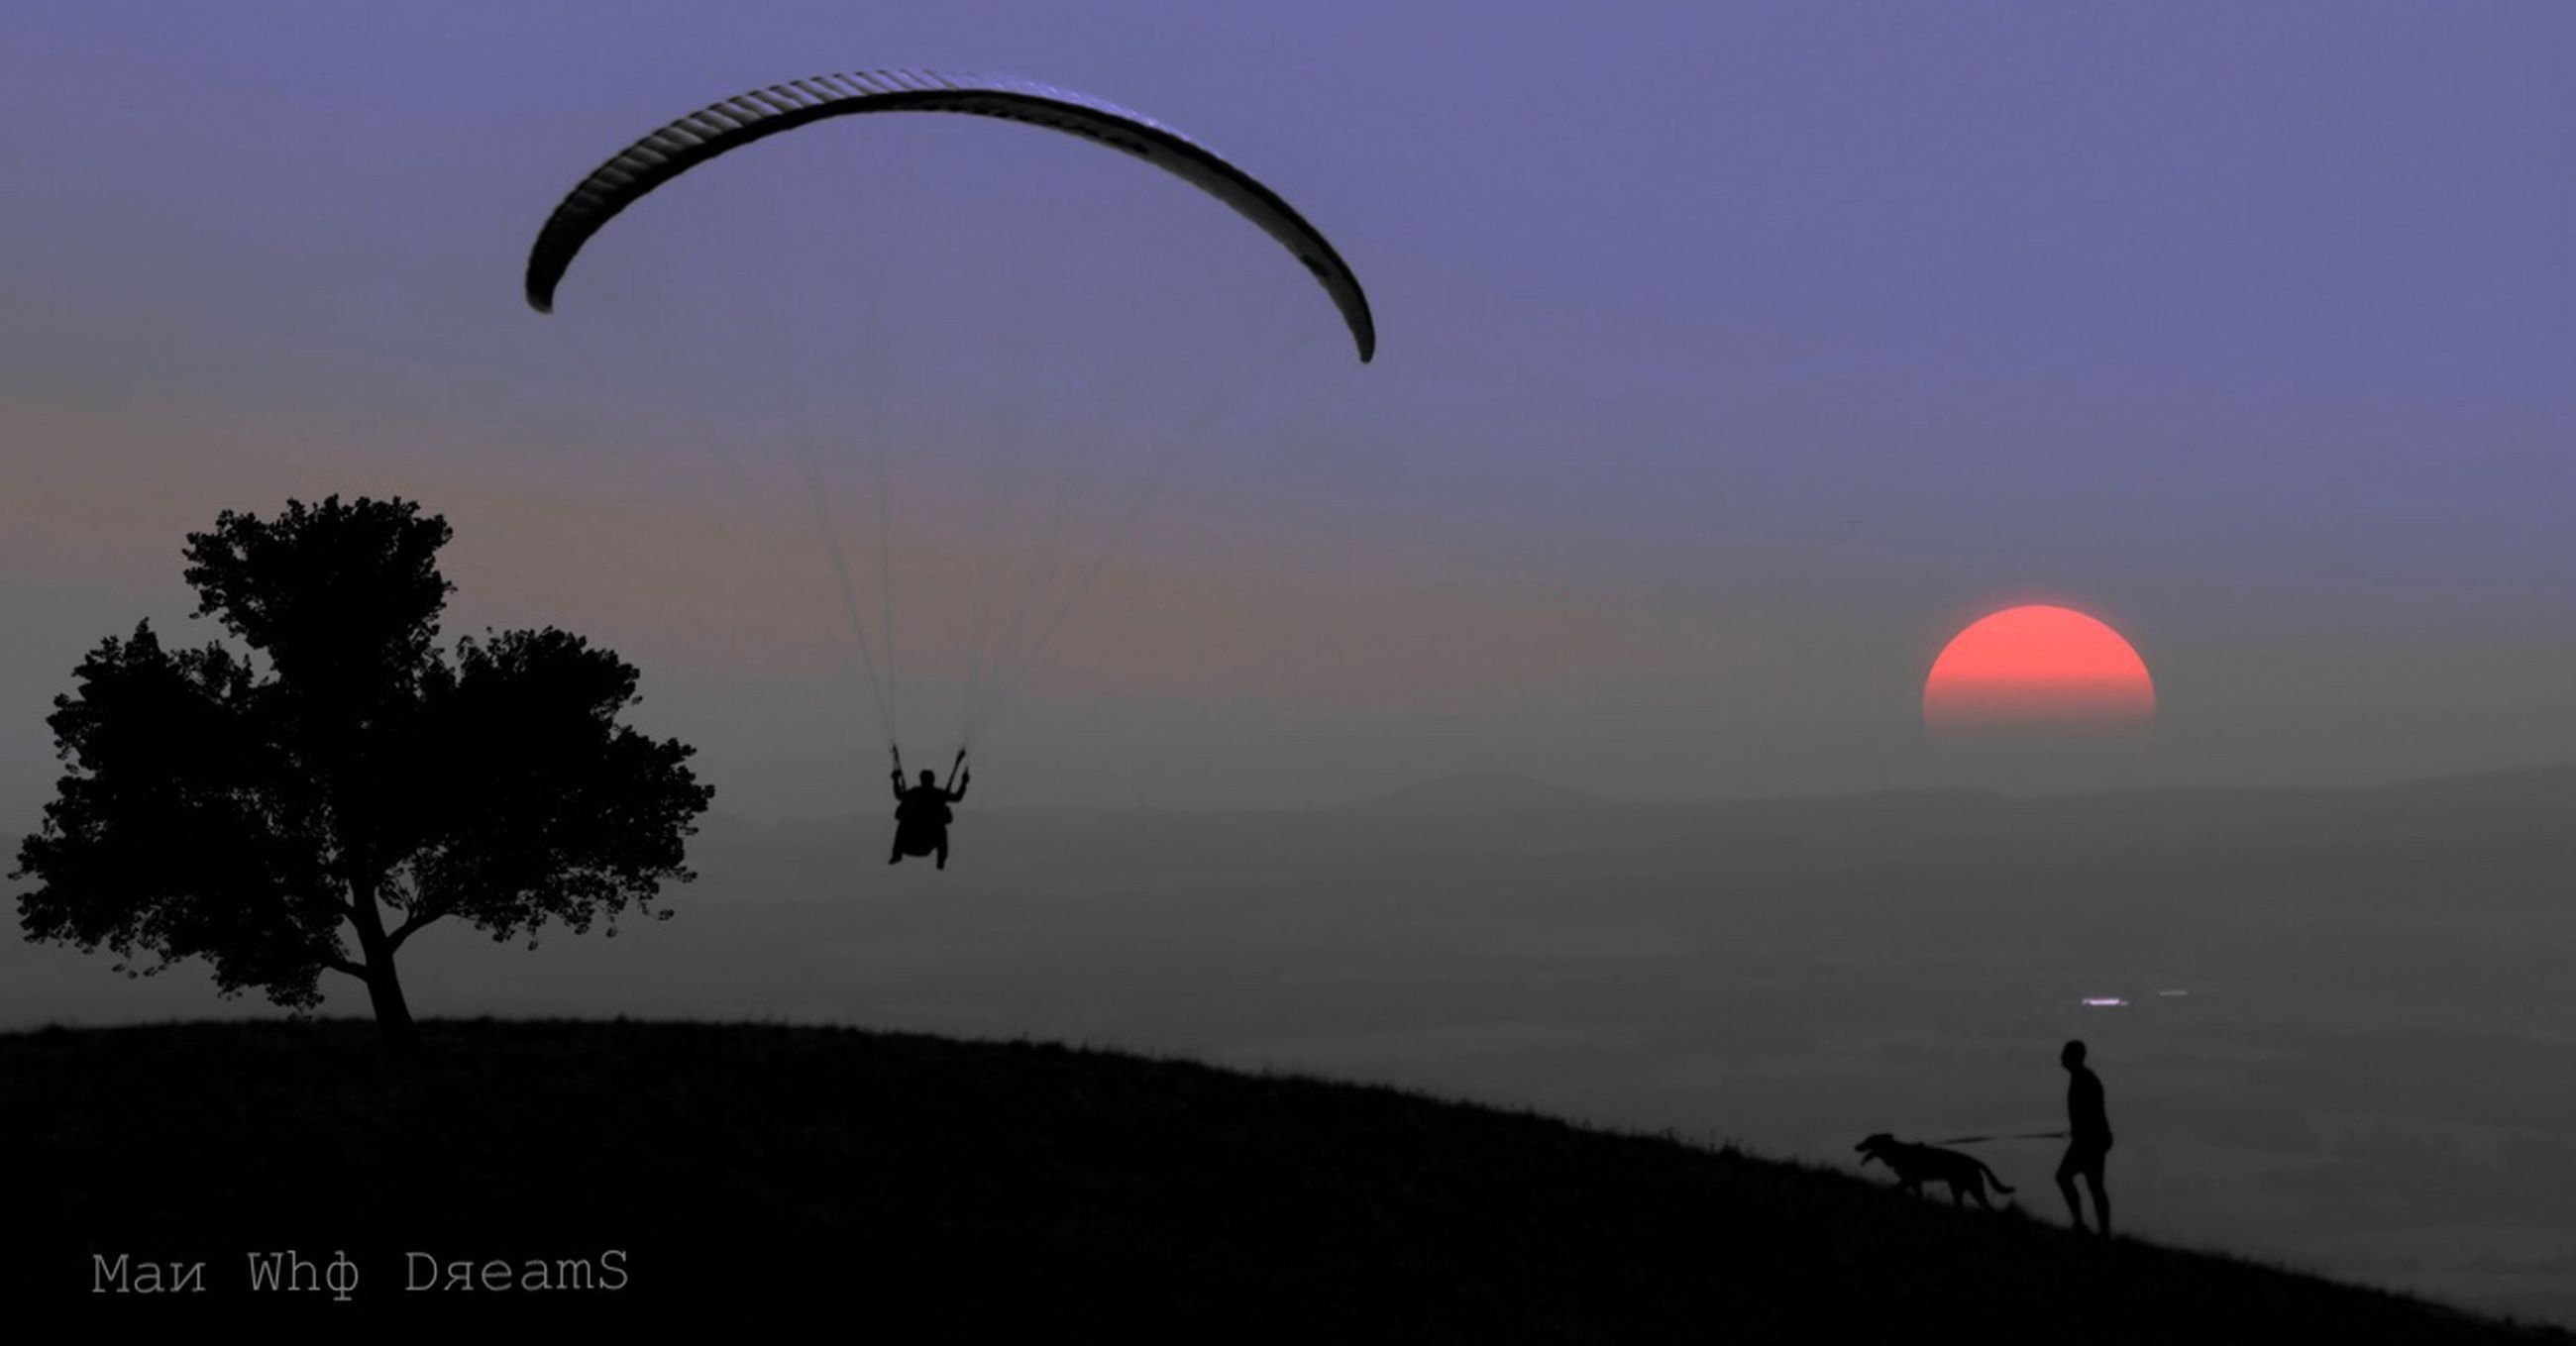 sky, adventure, leisure activity, parachute, real people, lifestyles, nature, paragliding, unrecognizable person, sunset, silhouette, people, flying, men, extreme sports, sun, land, beauty in nature, sport, outdoors, freedom